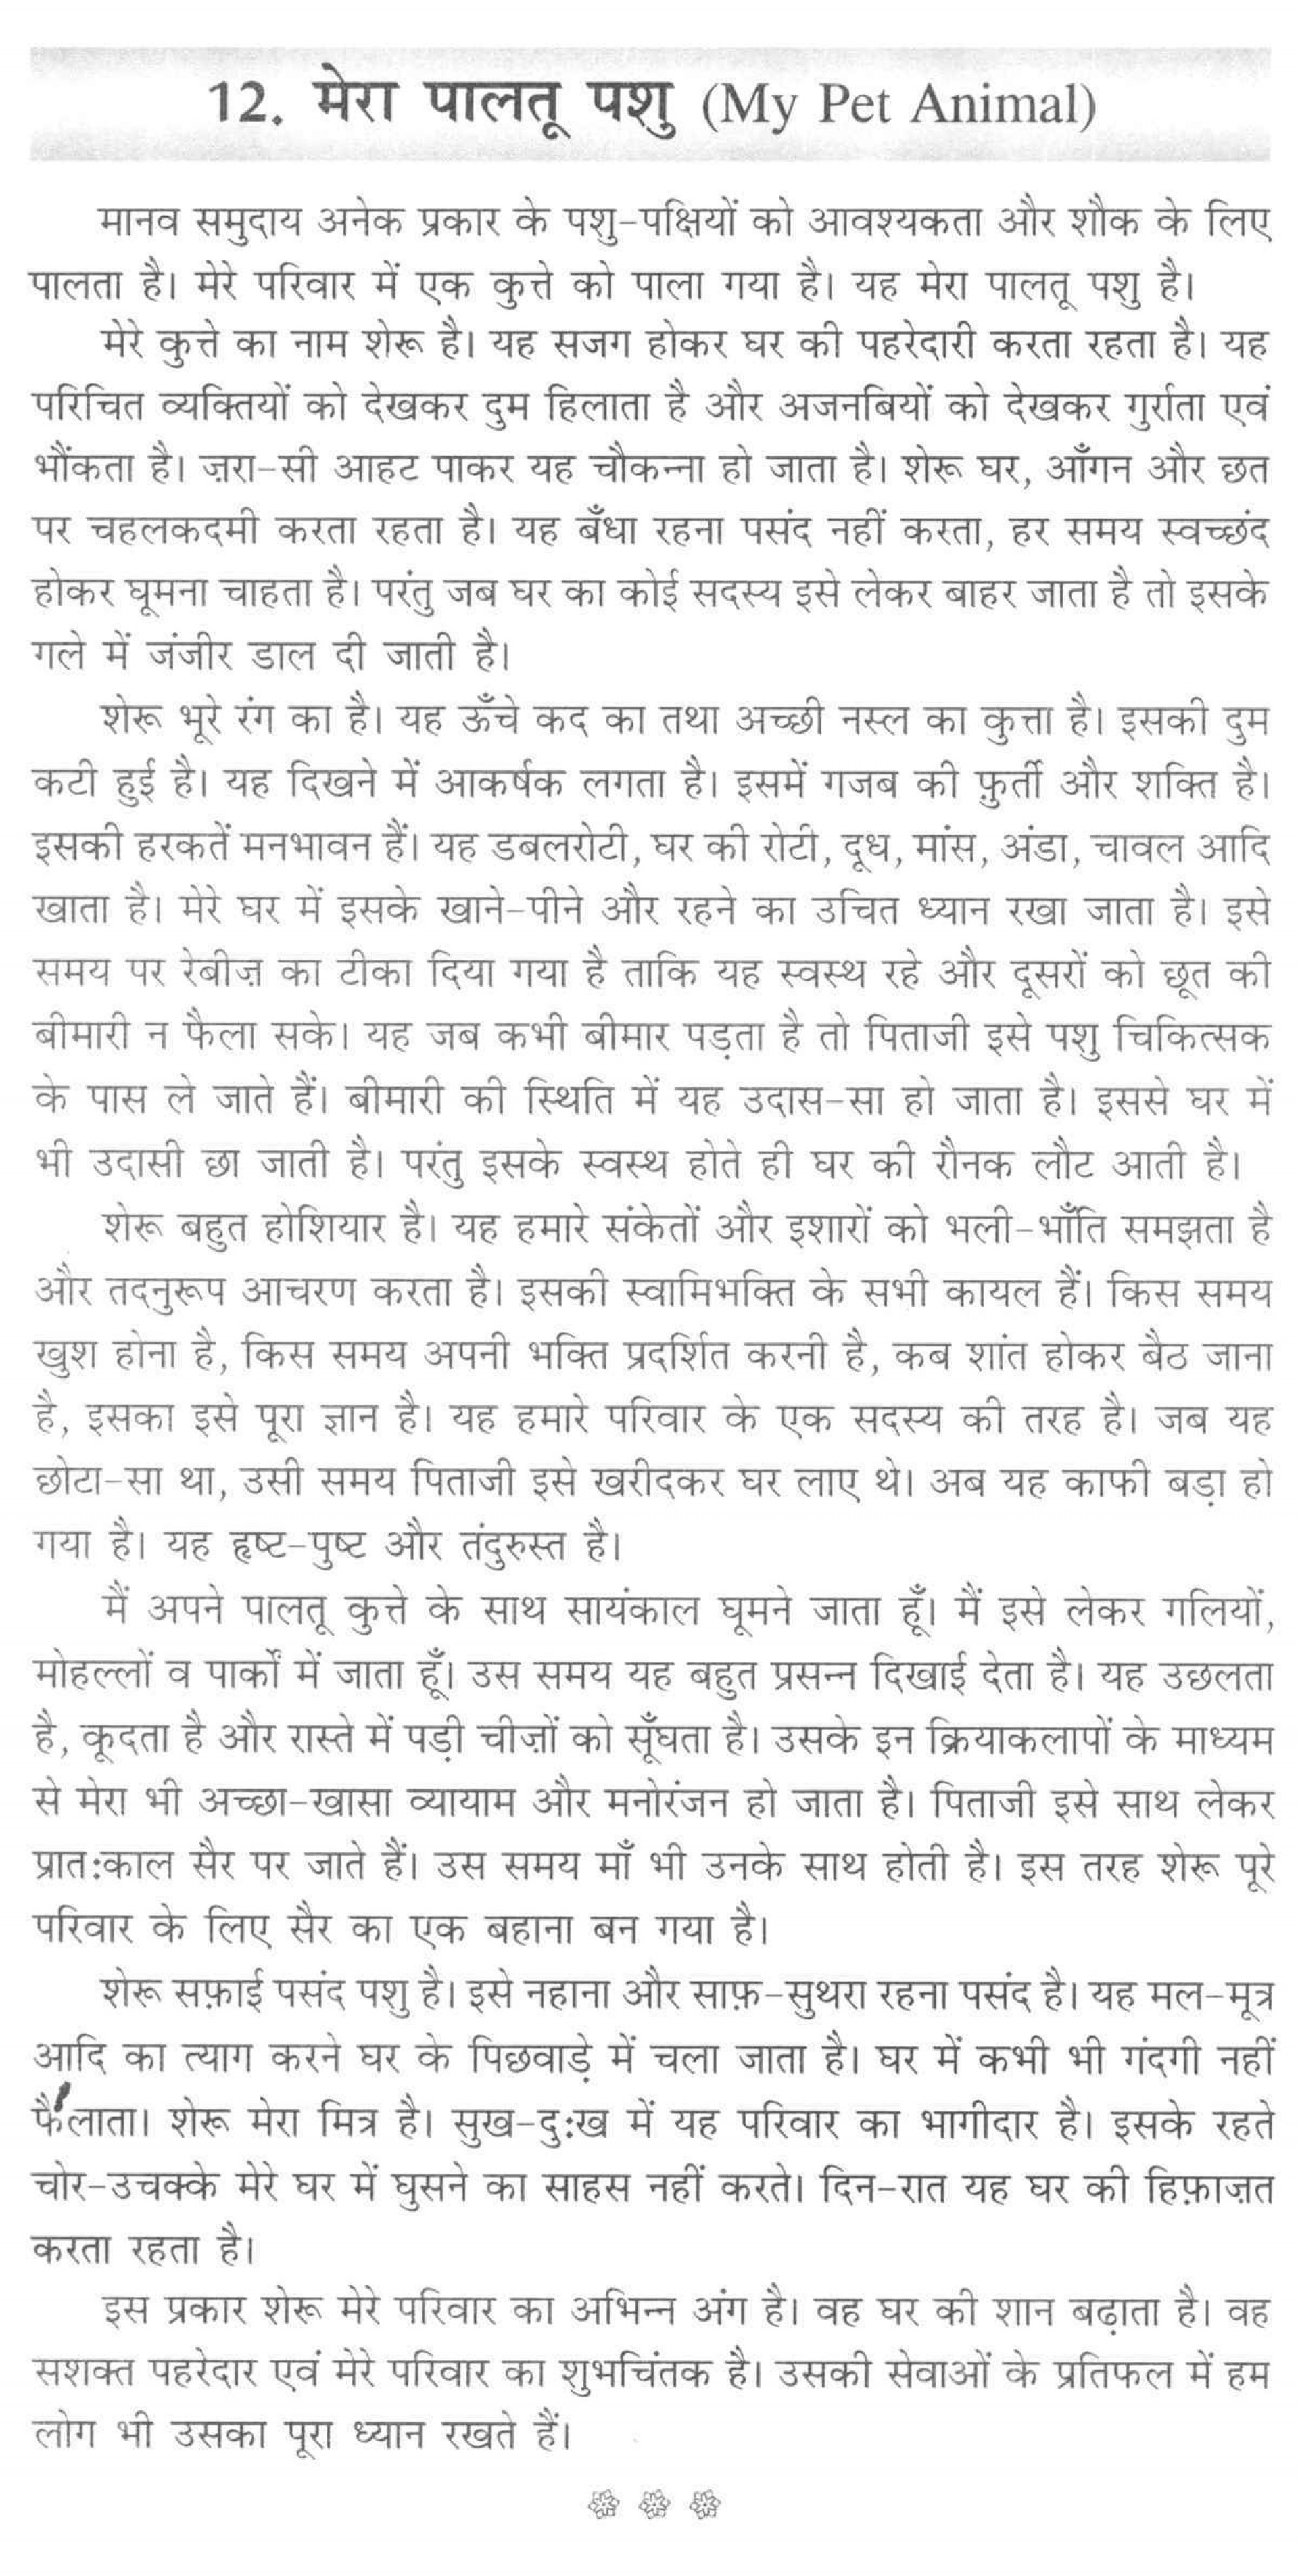 006 Essay On Love For Animals In Hindi Example Our Pet Writefiction581webfc2com Animal L Fascinating Towards And Birds 1920